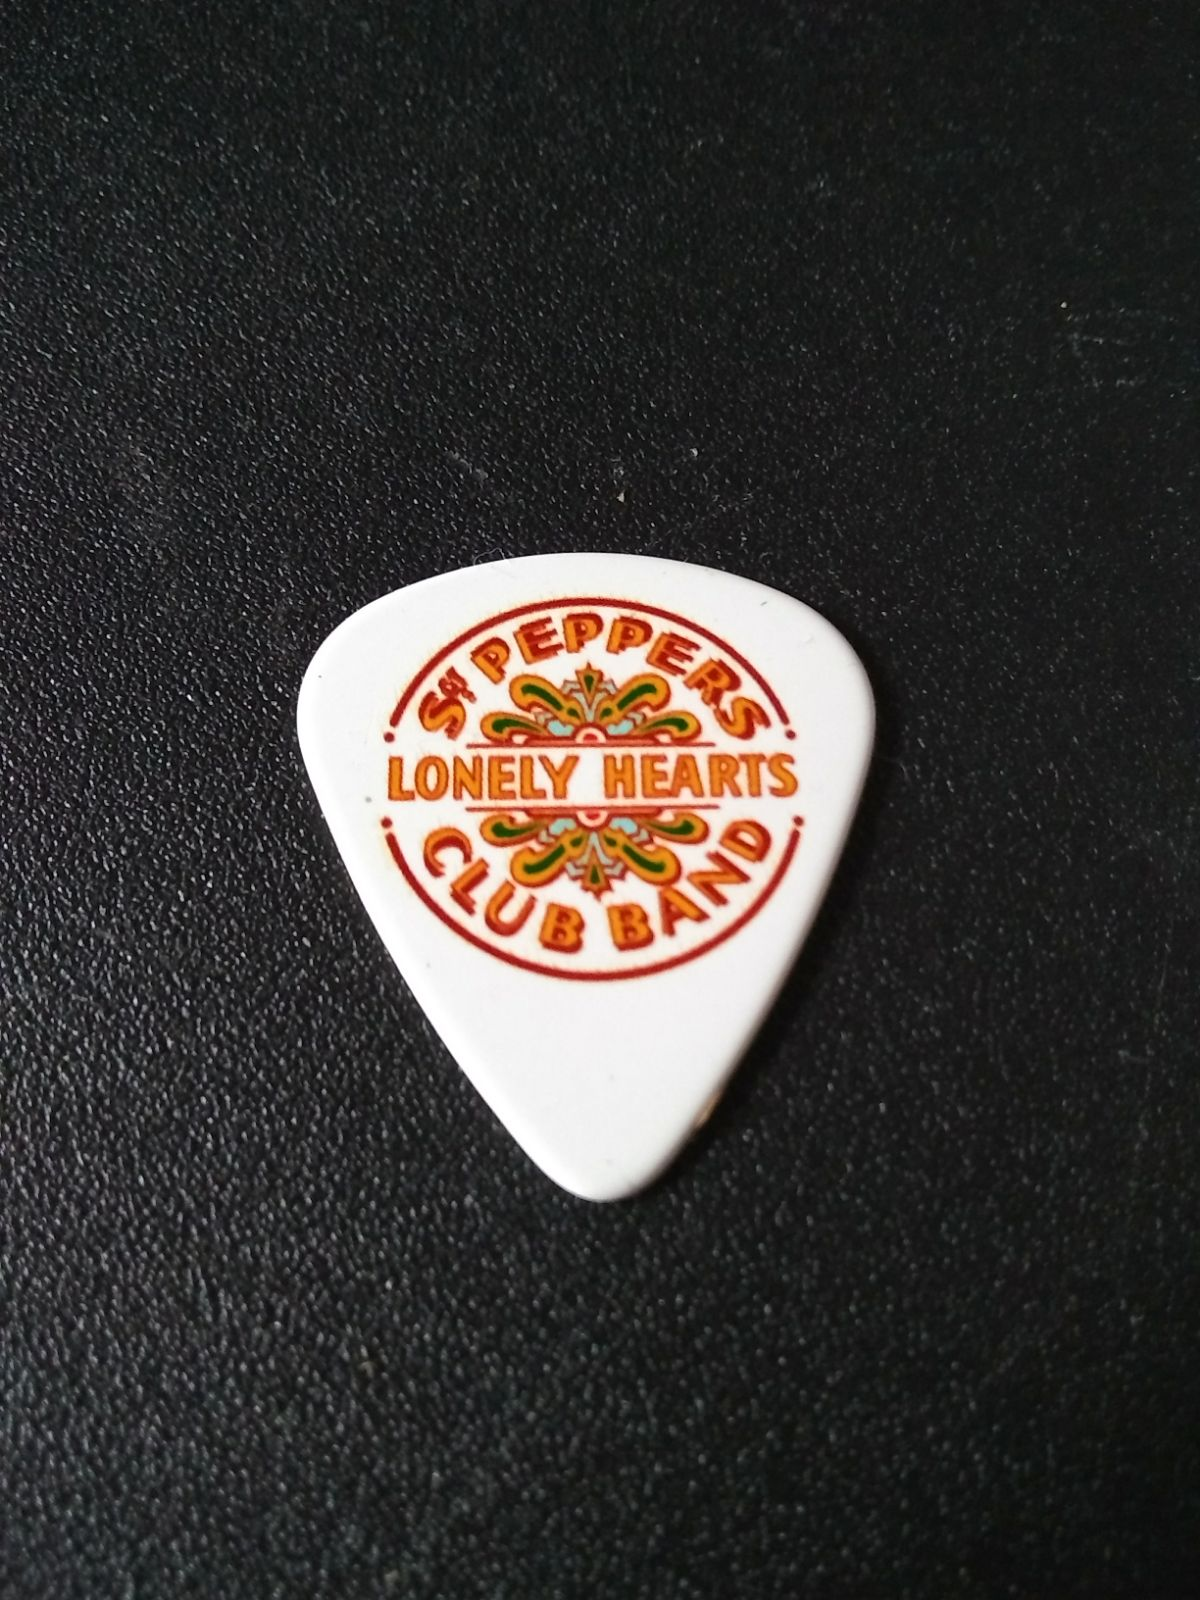 2009 The Beatles Srg.Peppers Guitar pick